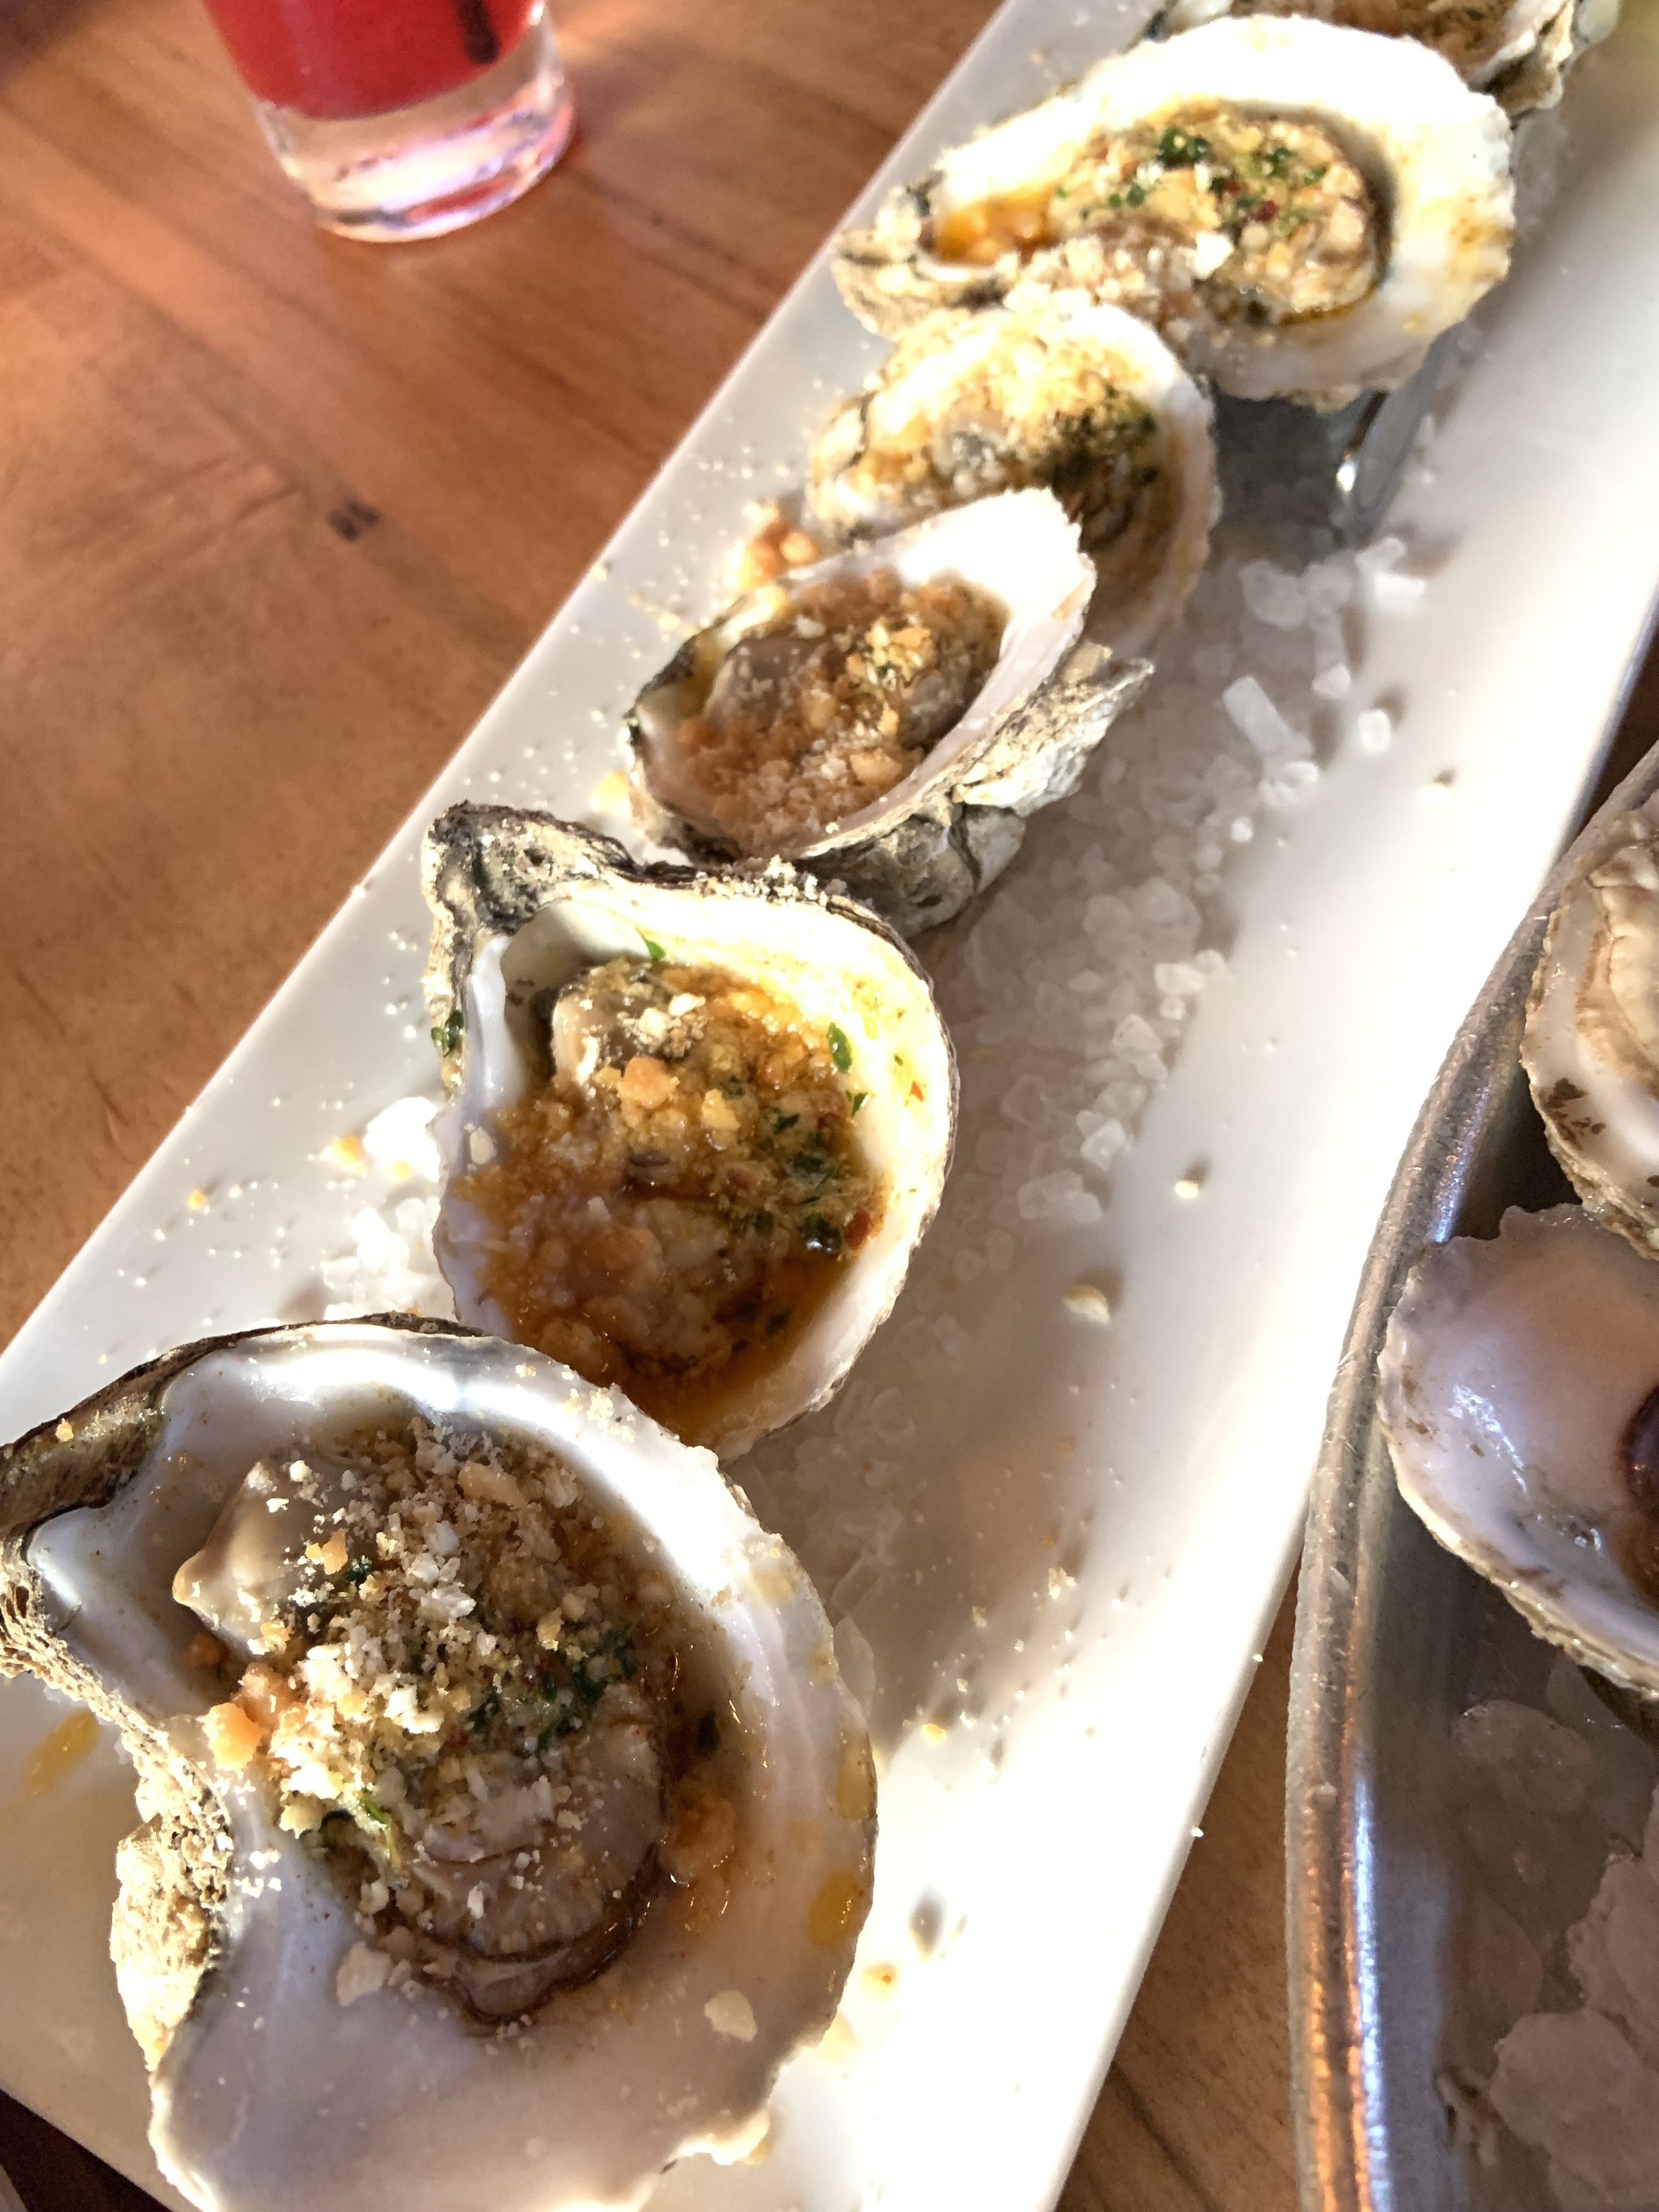 I always need Oysters